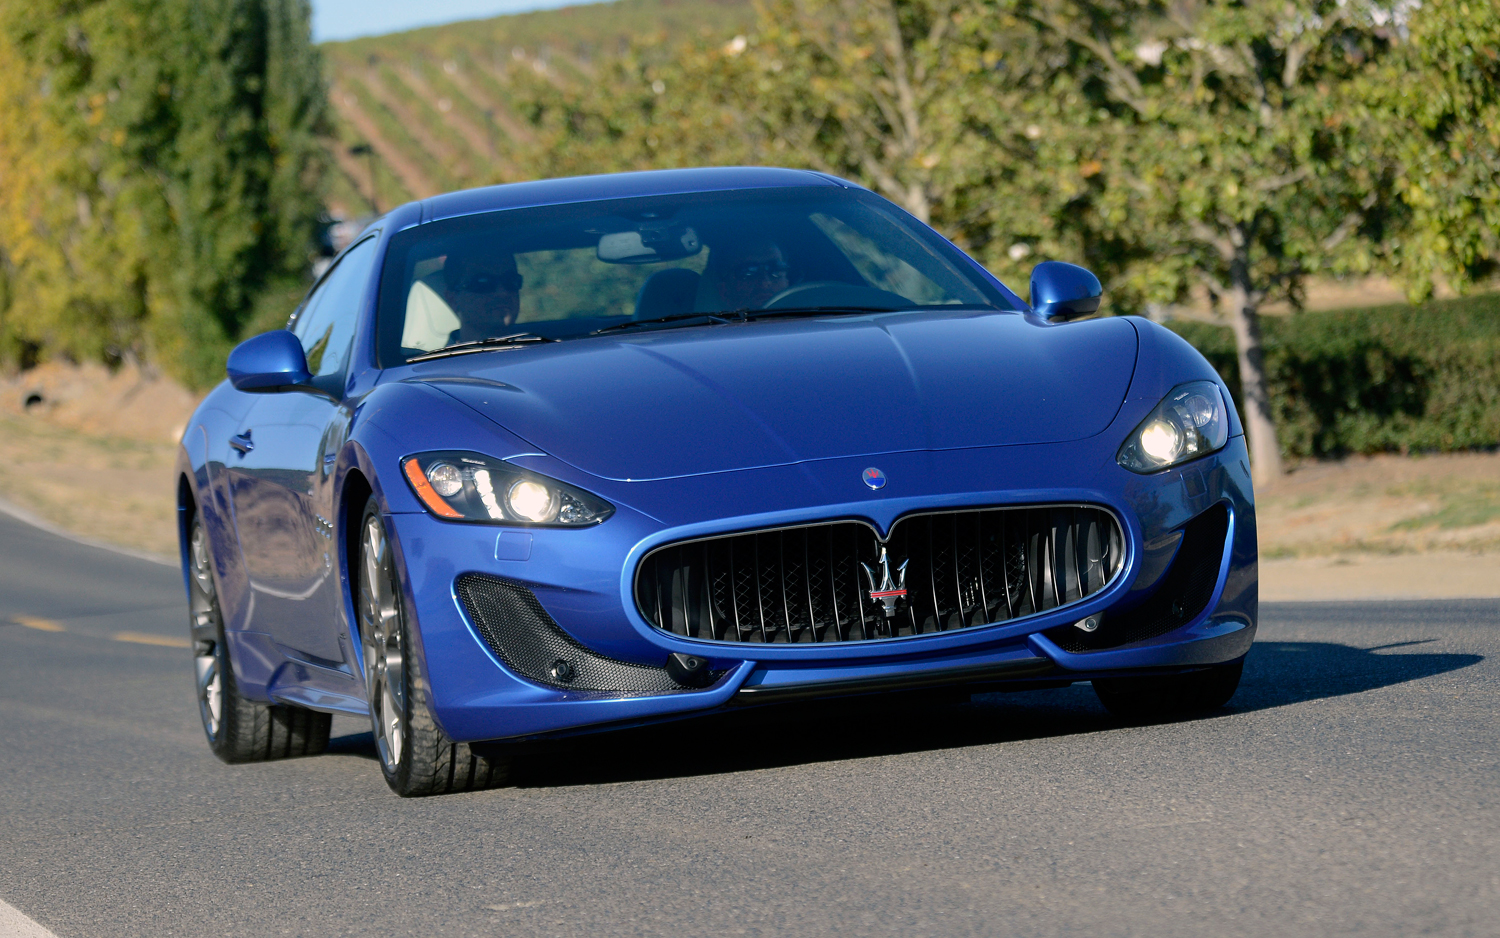 https://enthusiastnetwork.s3.amazonaws.com/uploads/sites/5/2012/11/2013-Maserati-Granturismo-Sport-front-end-in-motion.jpg?impolicy=entryimage